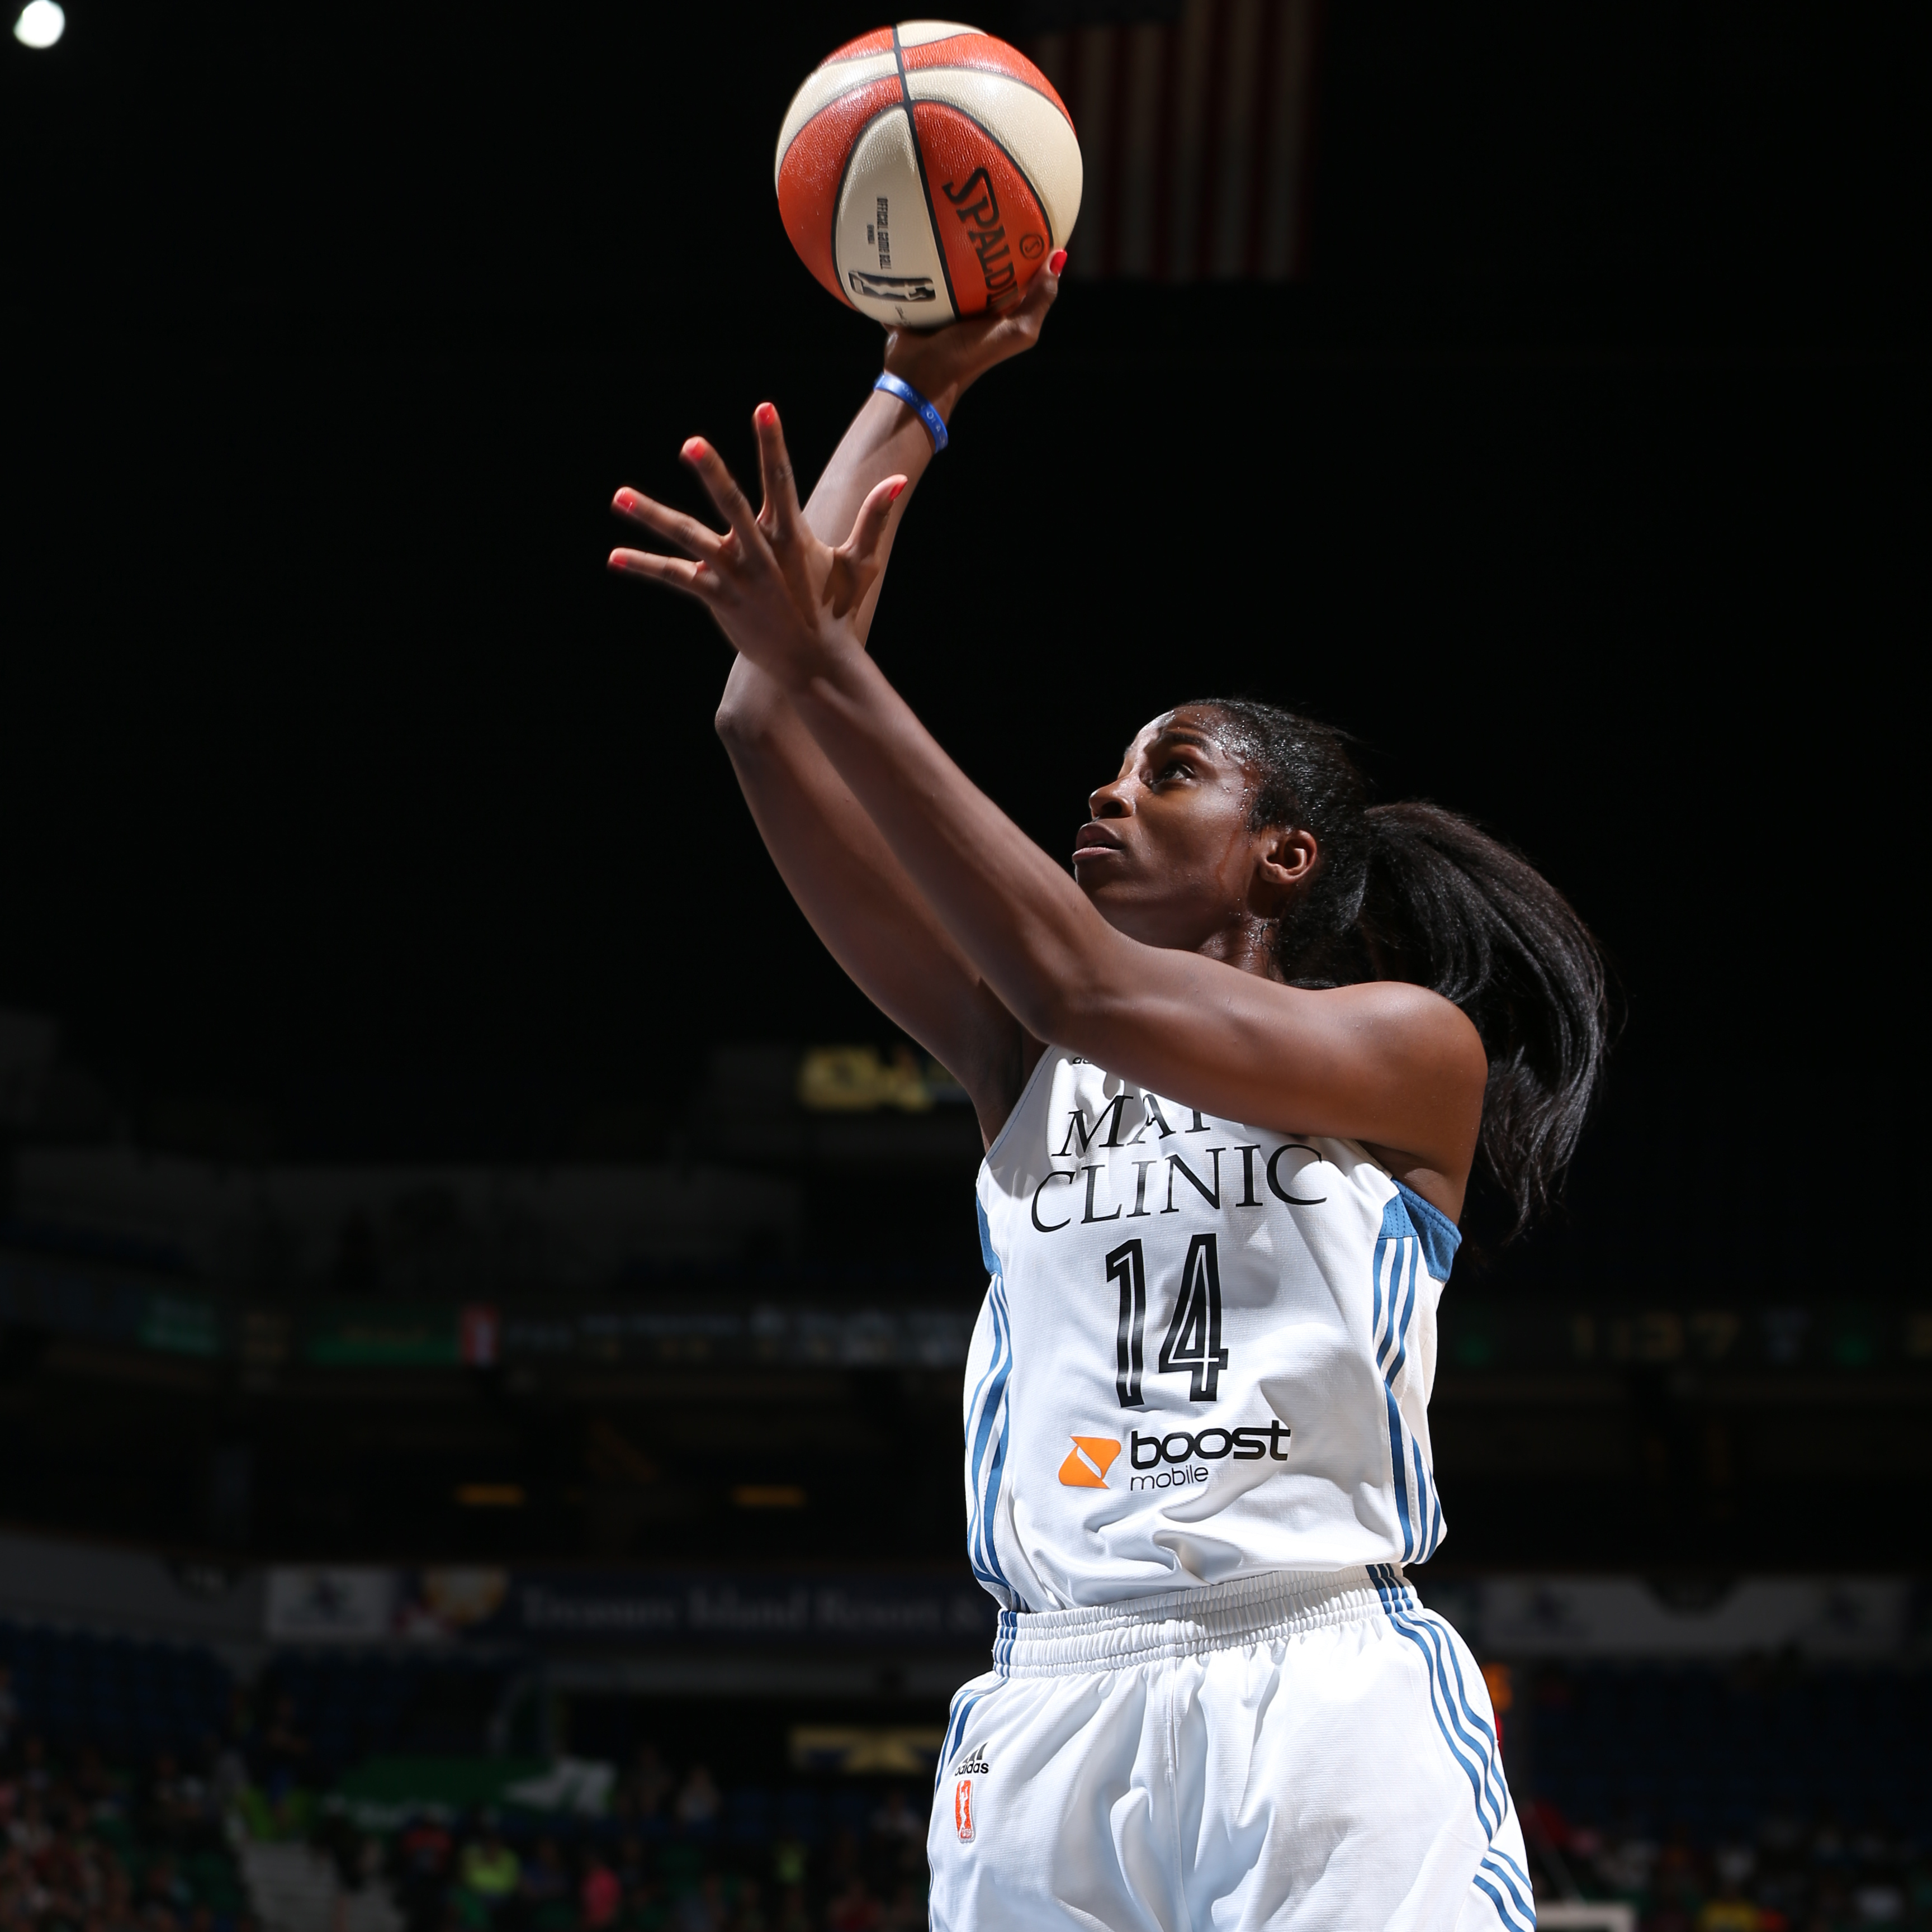 Lynx forward Devereaux Peters had another solid all-around game off the bench, scoring five points to go with her four rebounds and four blocked shots. It was the second game in a row that Peters has blocked four or more shots.